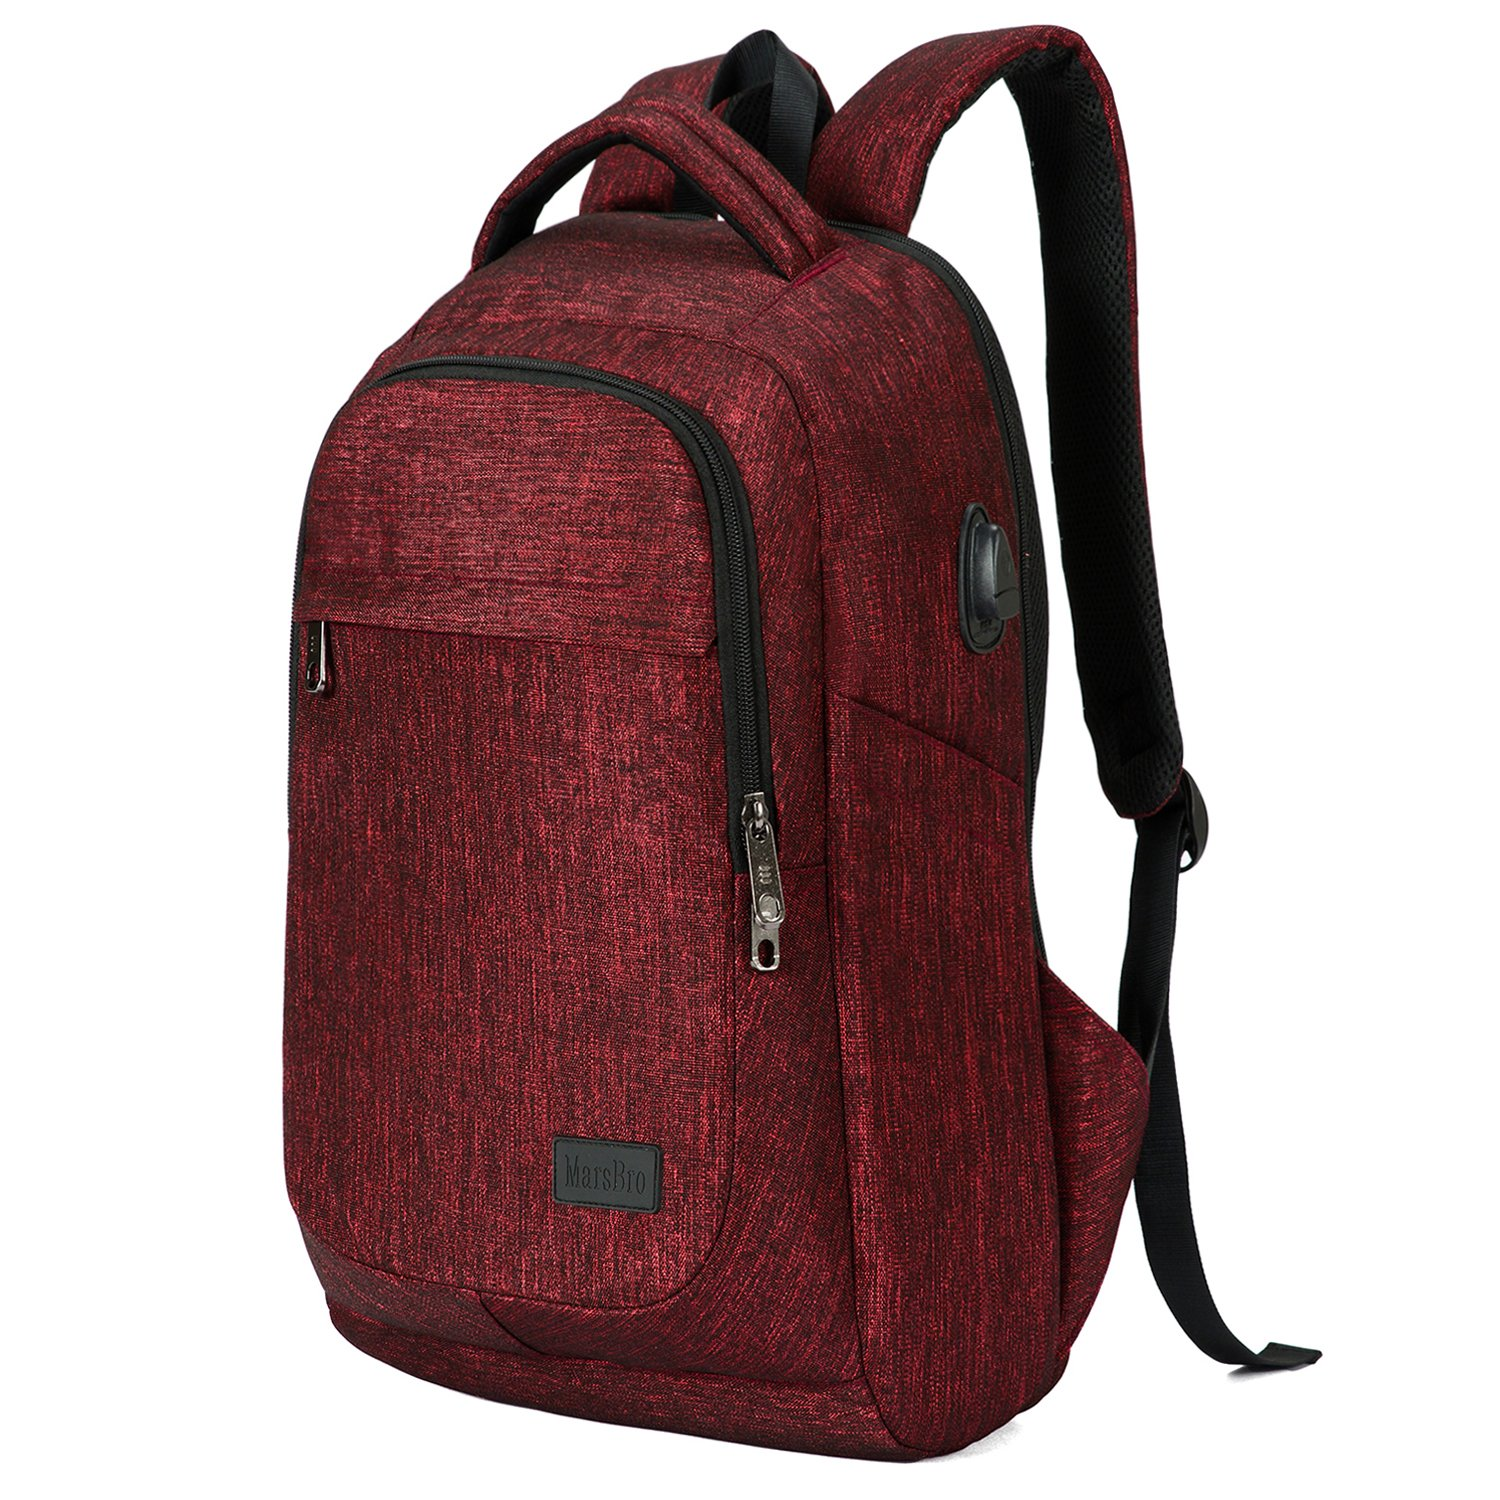 MarsBro Laptop Backpack, Anti Theft Business Water Resistant 15.6 Inch with USB Charging Port Travel College Computer Bag, Wine Red